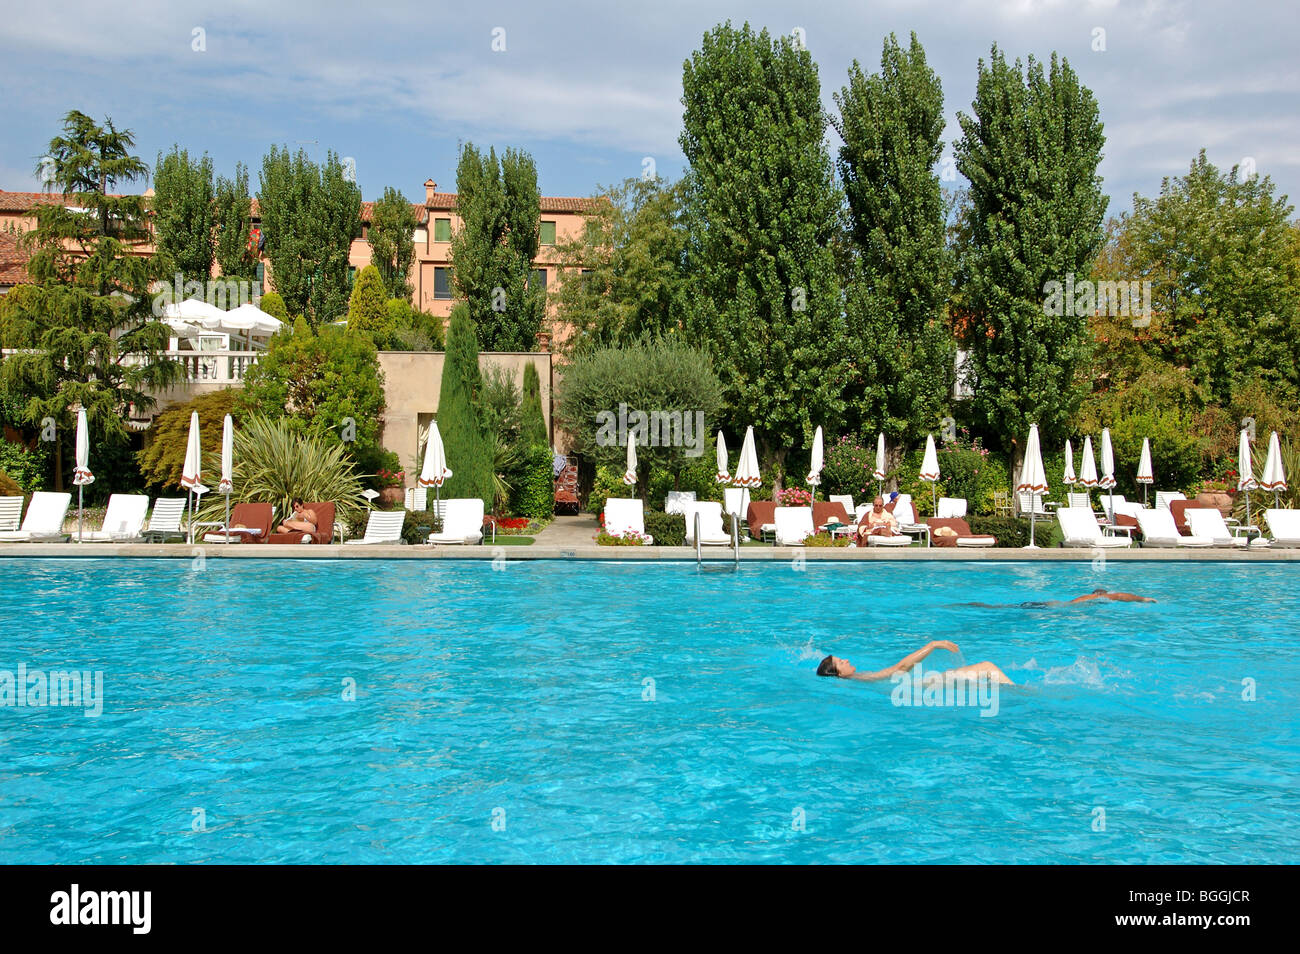 Swimming pool of a hotel venice italy stock photo royalty free image 27410567 alamy for Hotels in bologna italy with swimming pool